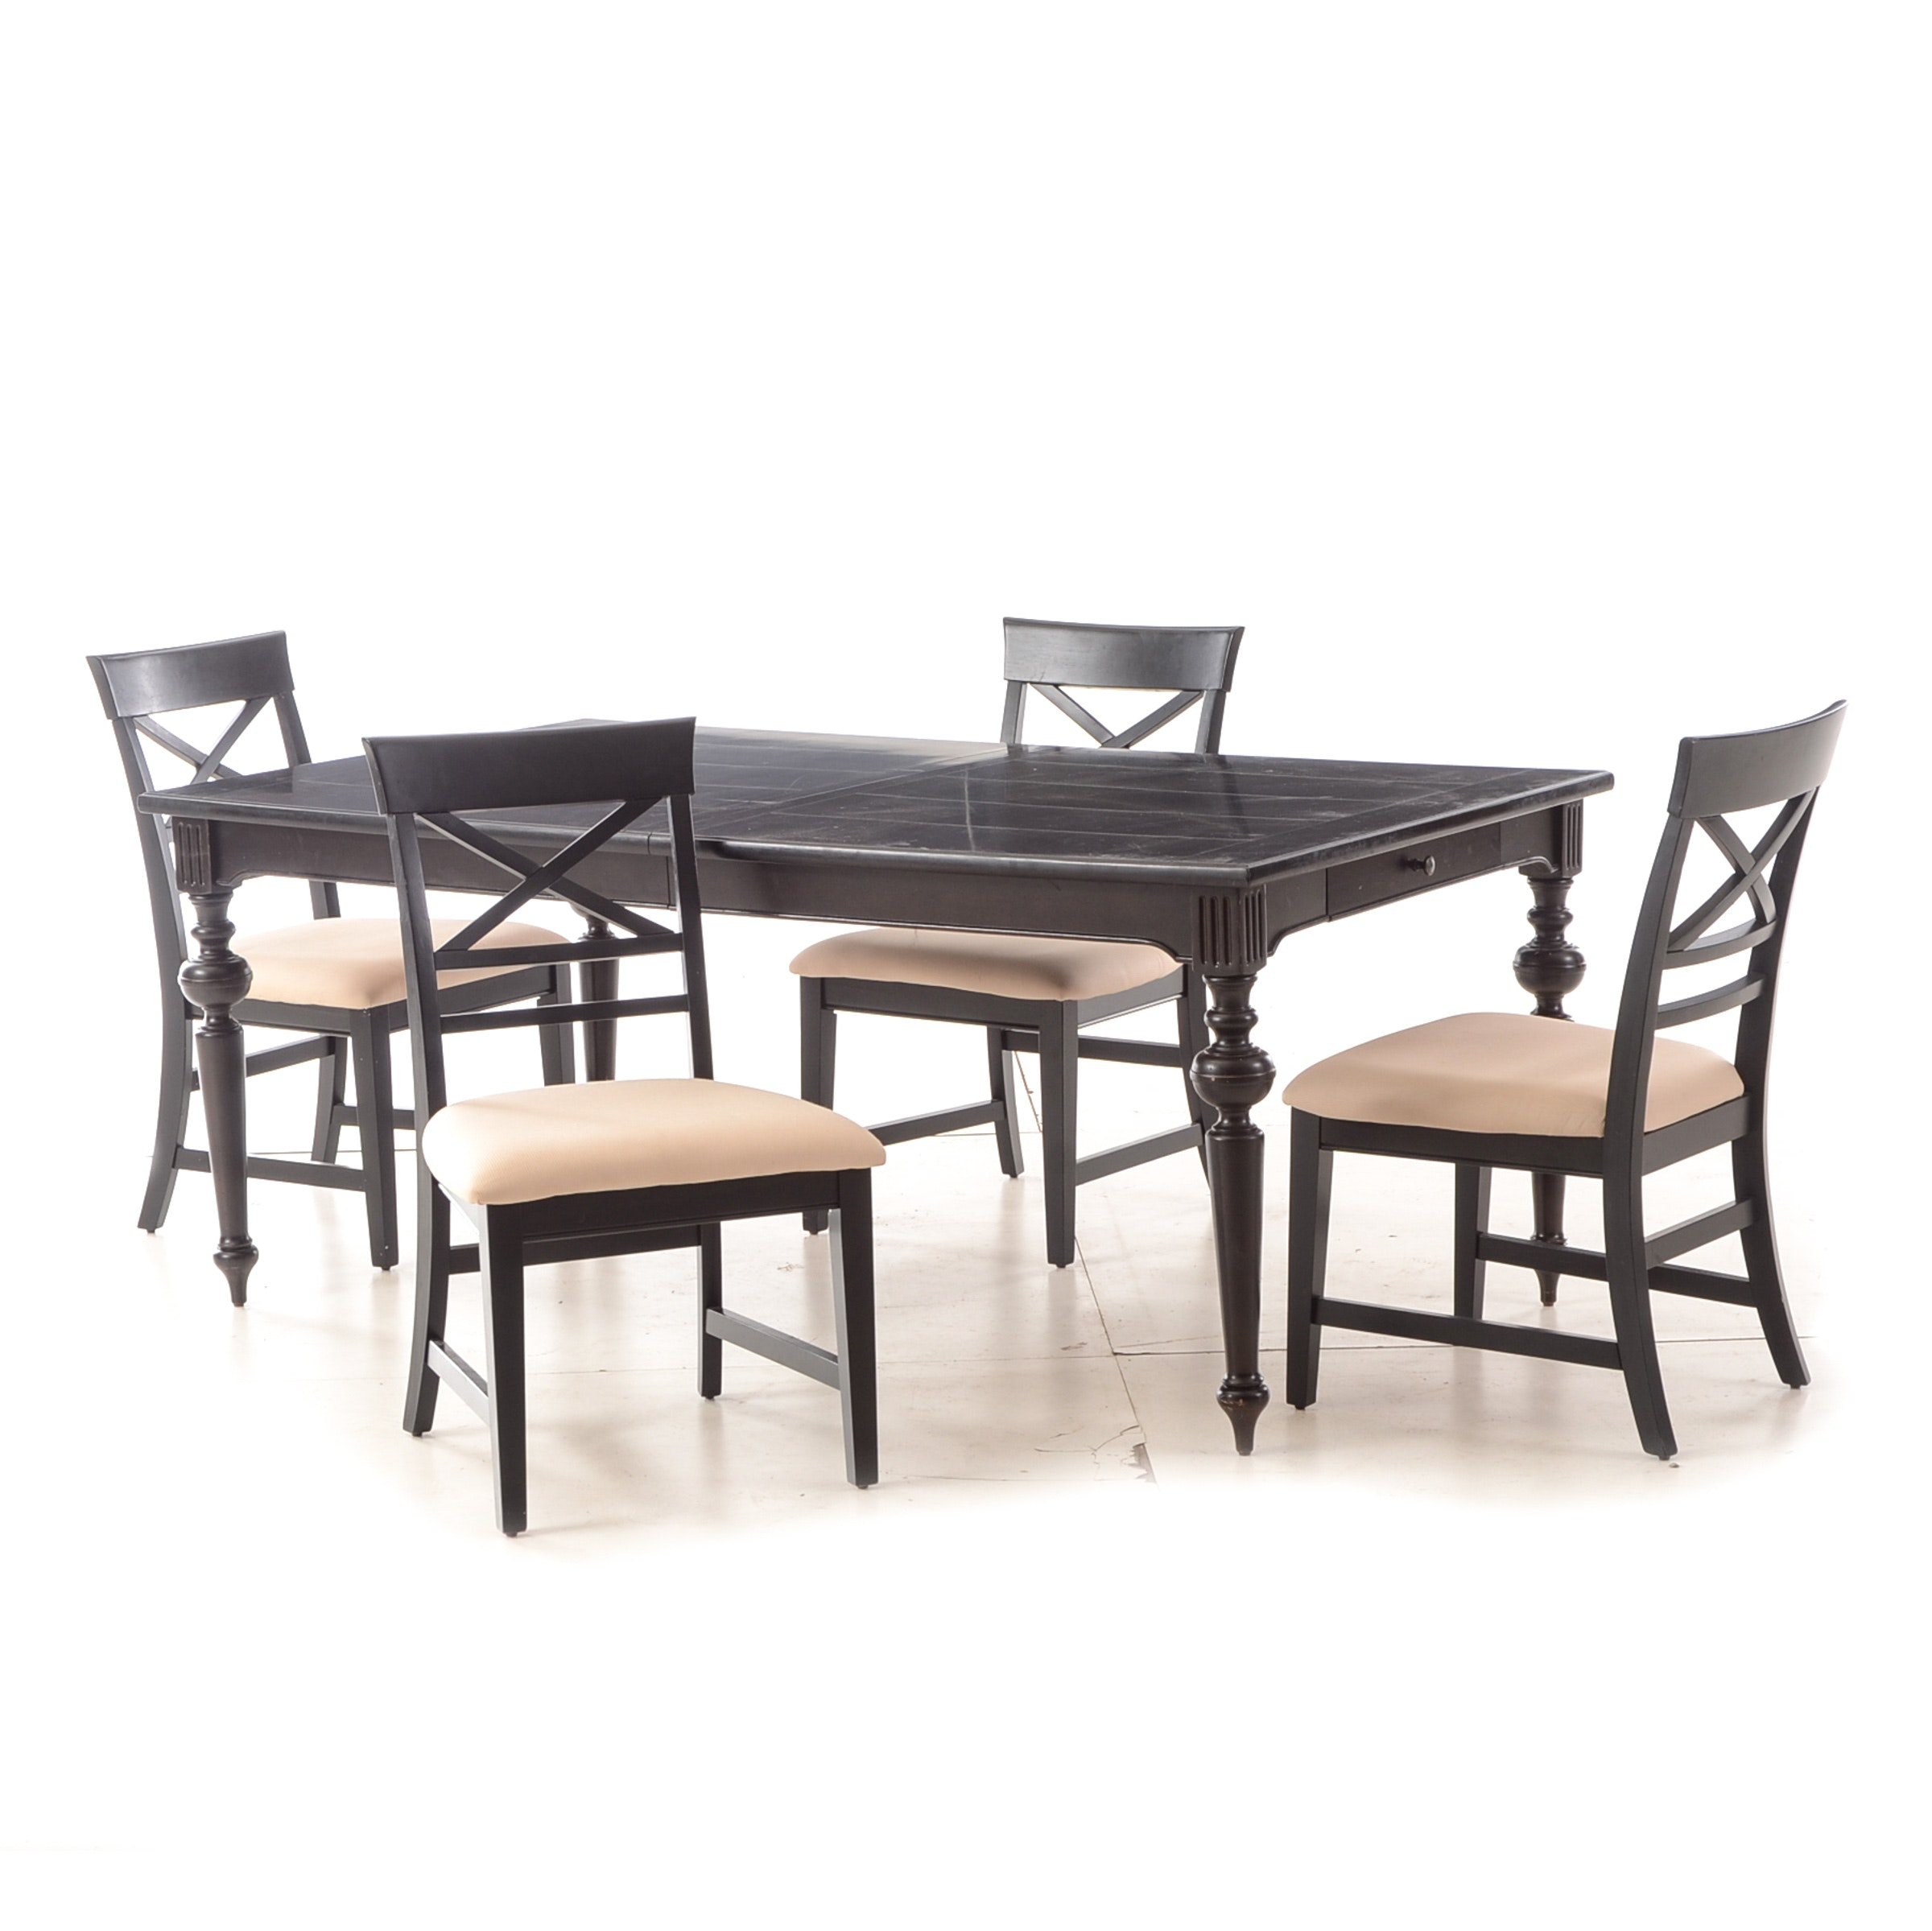 Farmhouse Style Table with Four Chairs